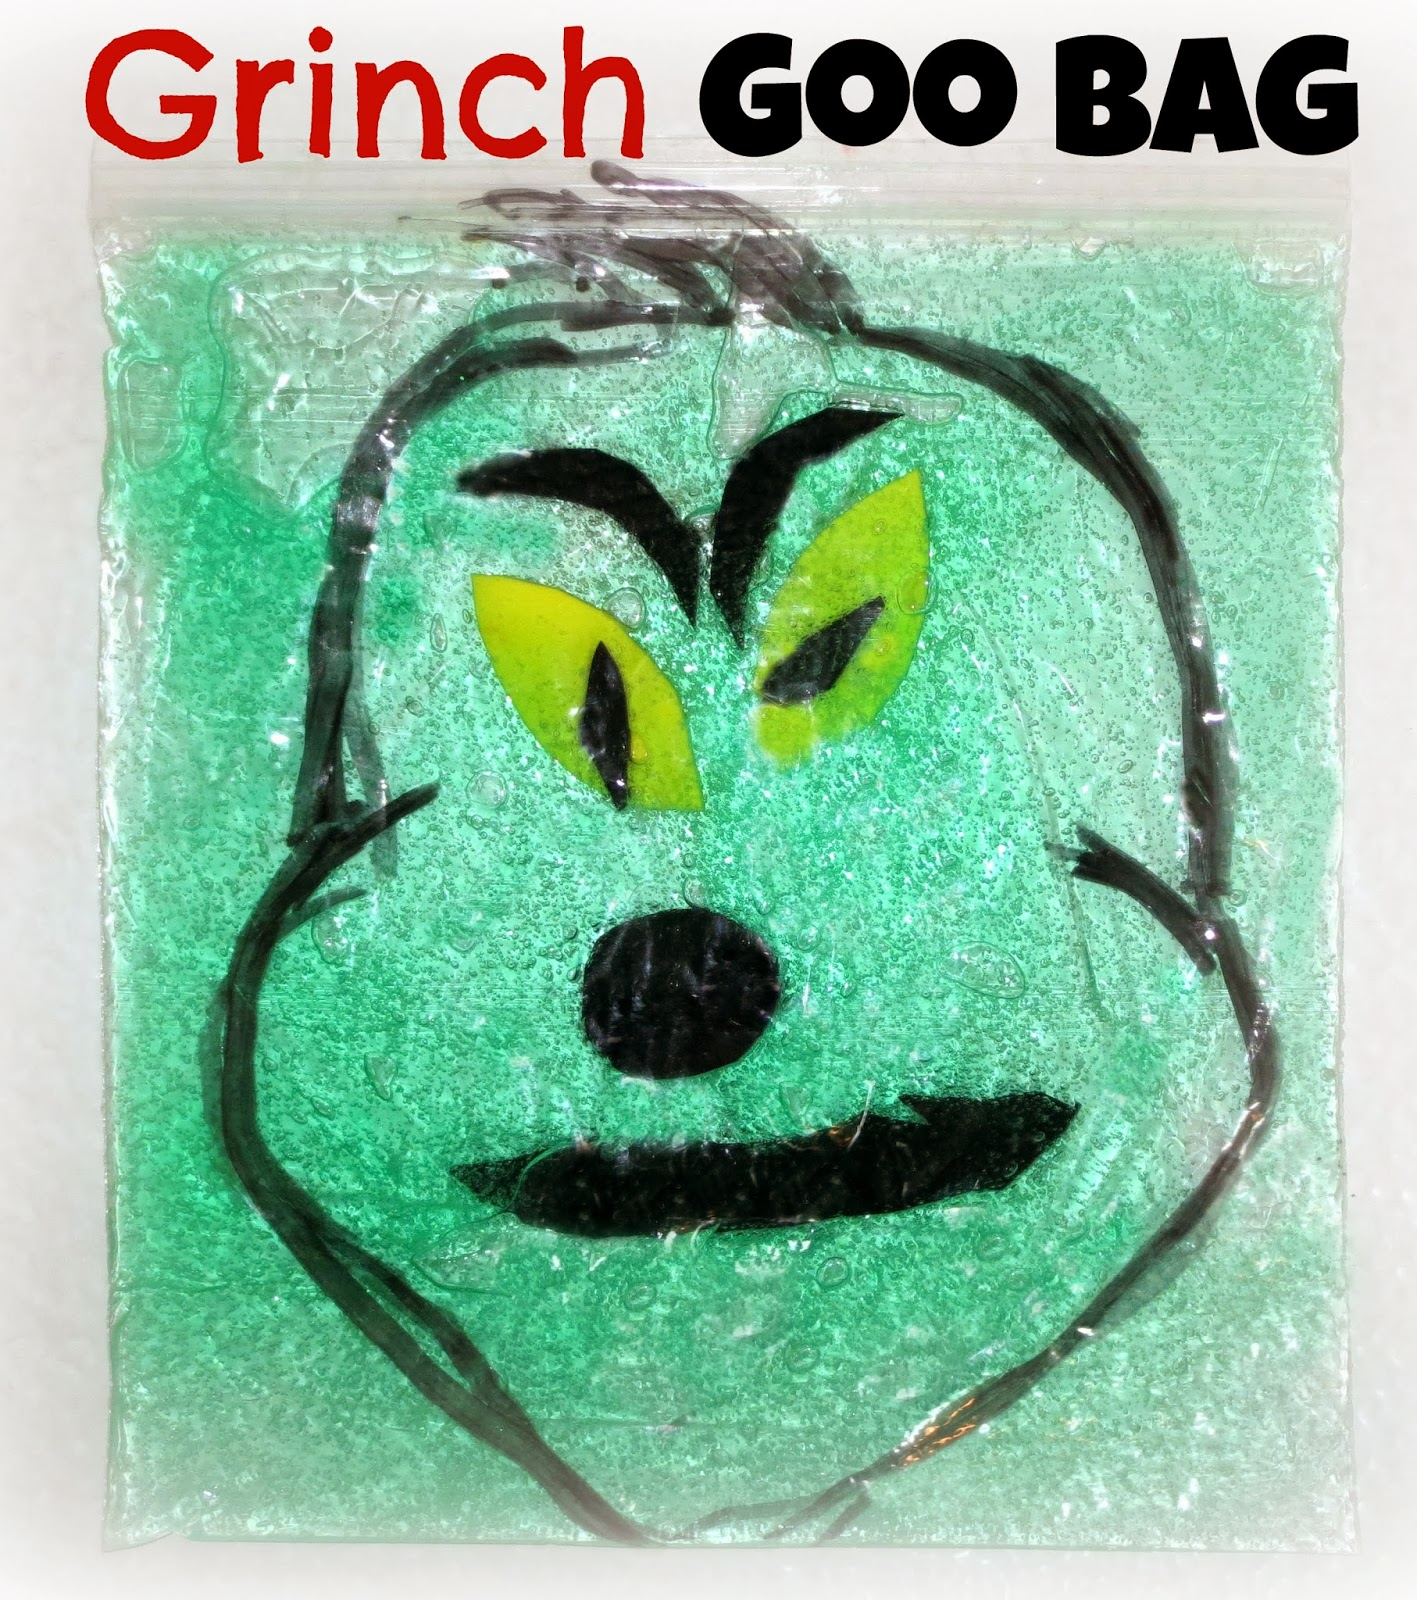 Grinch face outline cut grinch face shapes out of